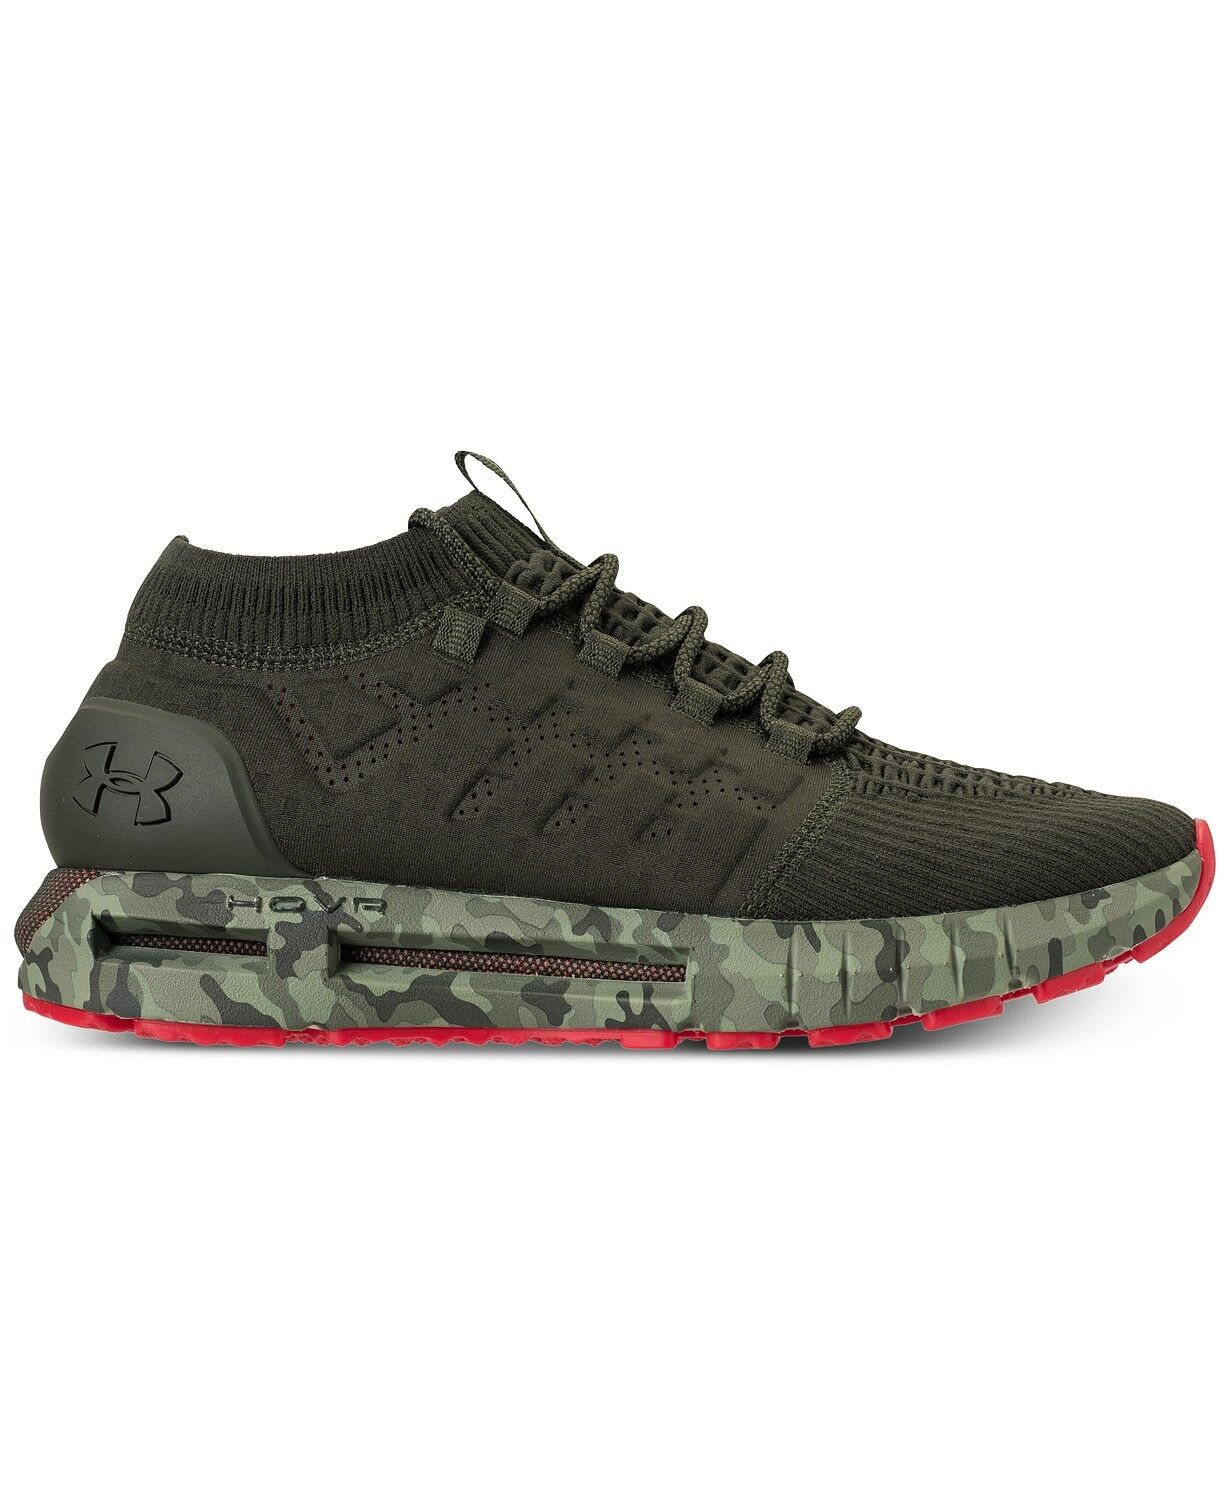 Men's Authentic Under Armour Hovr Phantom Running Shoes Sizes 8-13